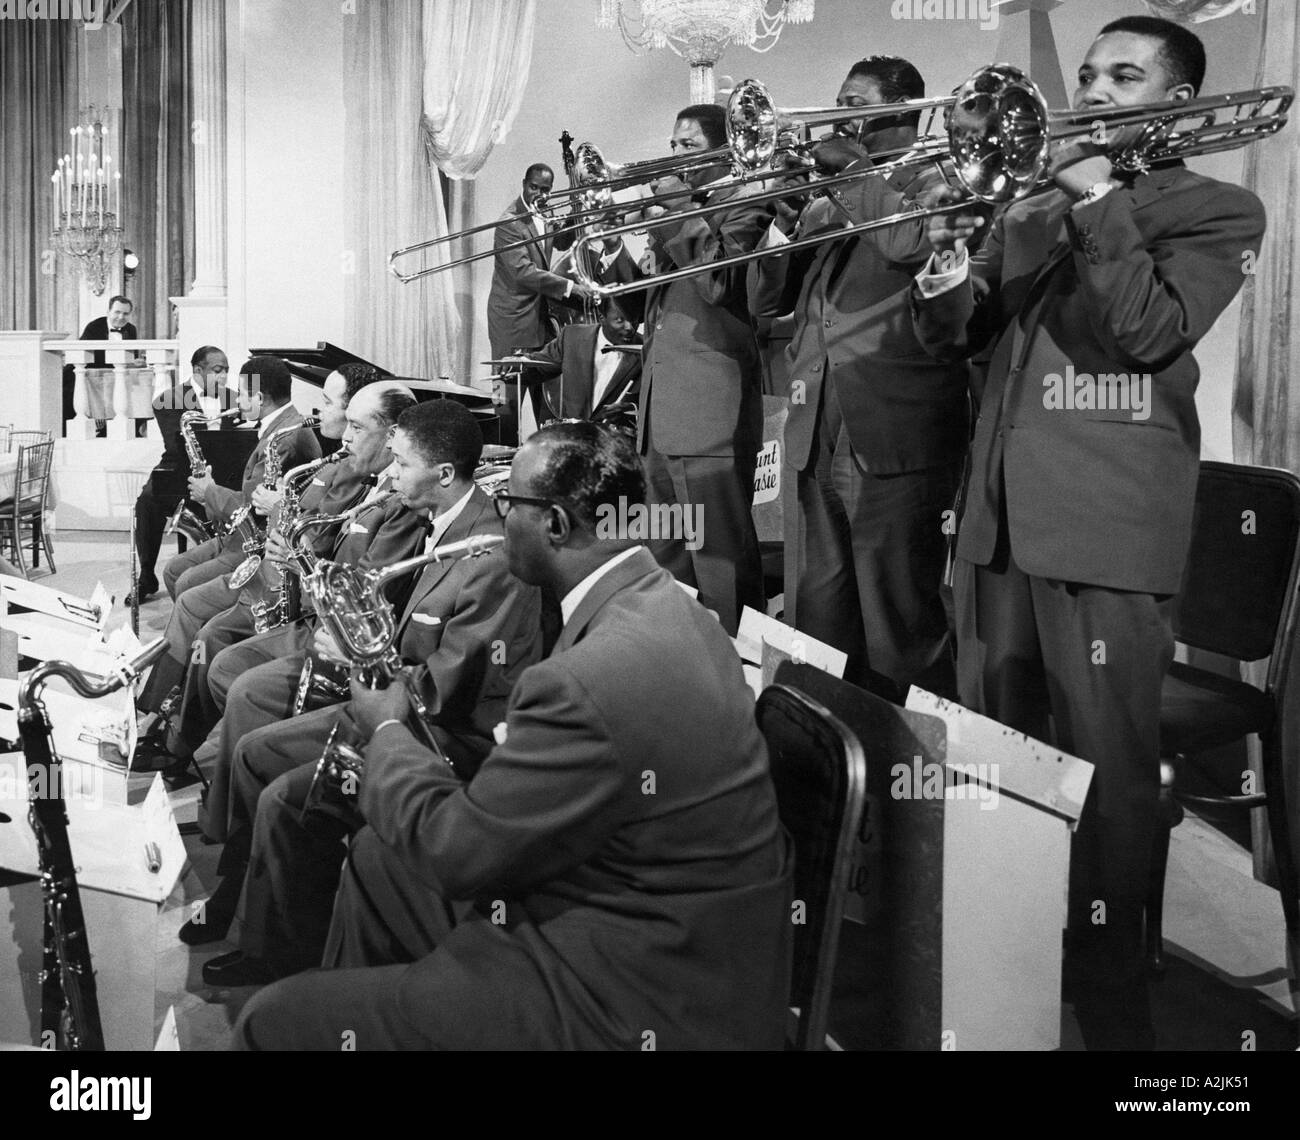 COUNT BASIE 1904 1944 with his band - Stock Image